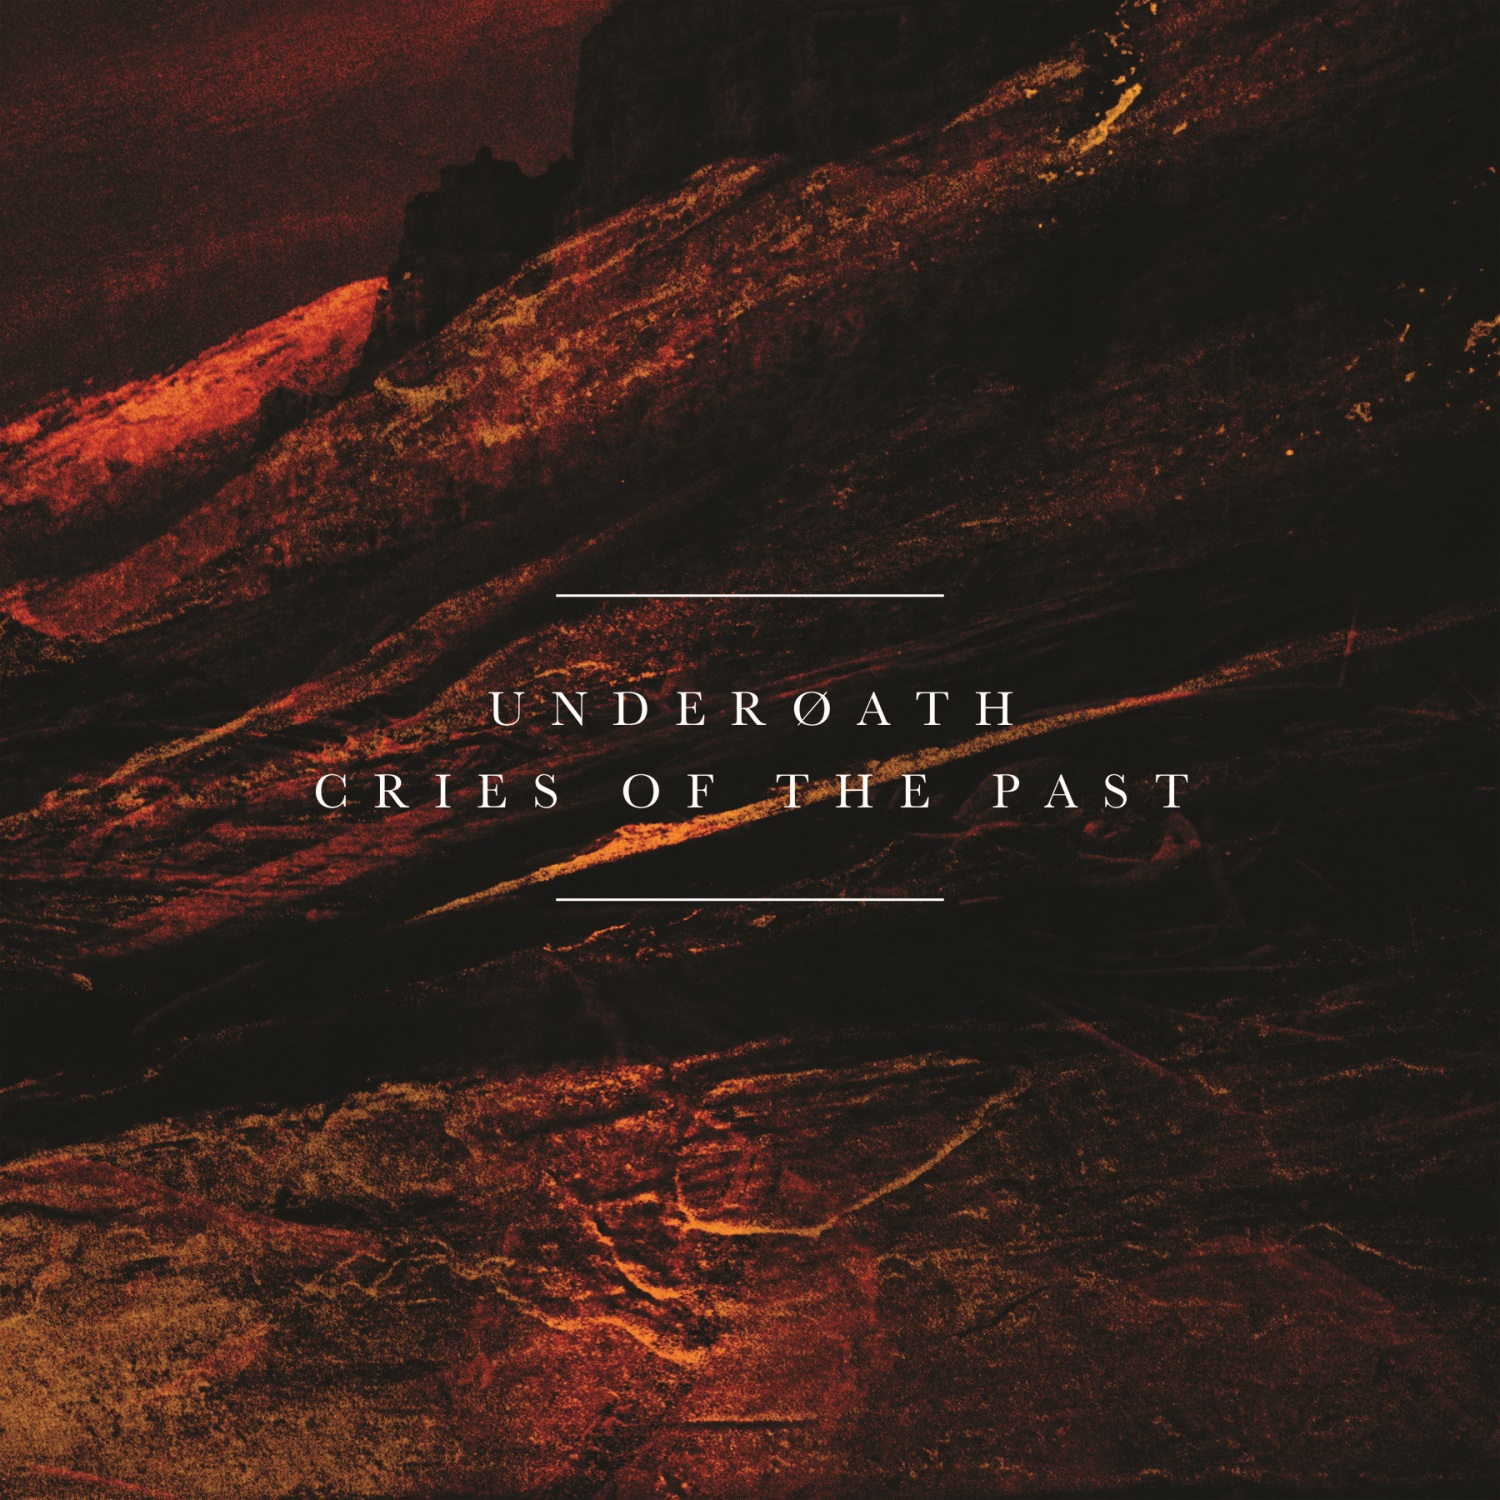 Underoath - Cries of the Past (Reissue) (2013)